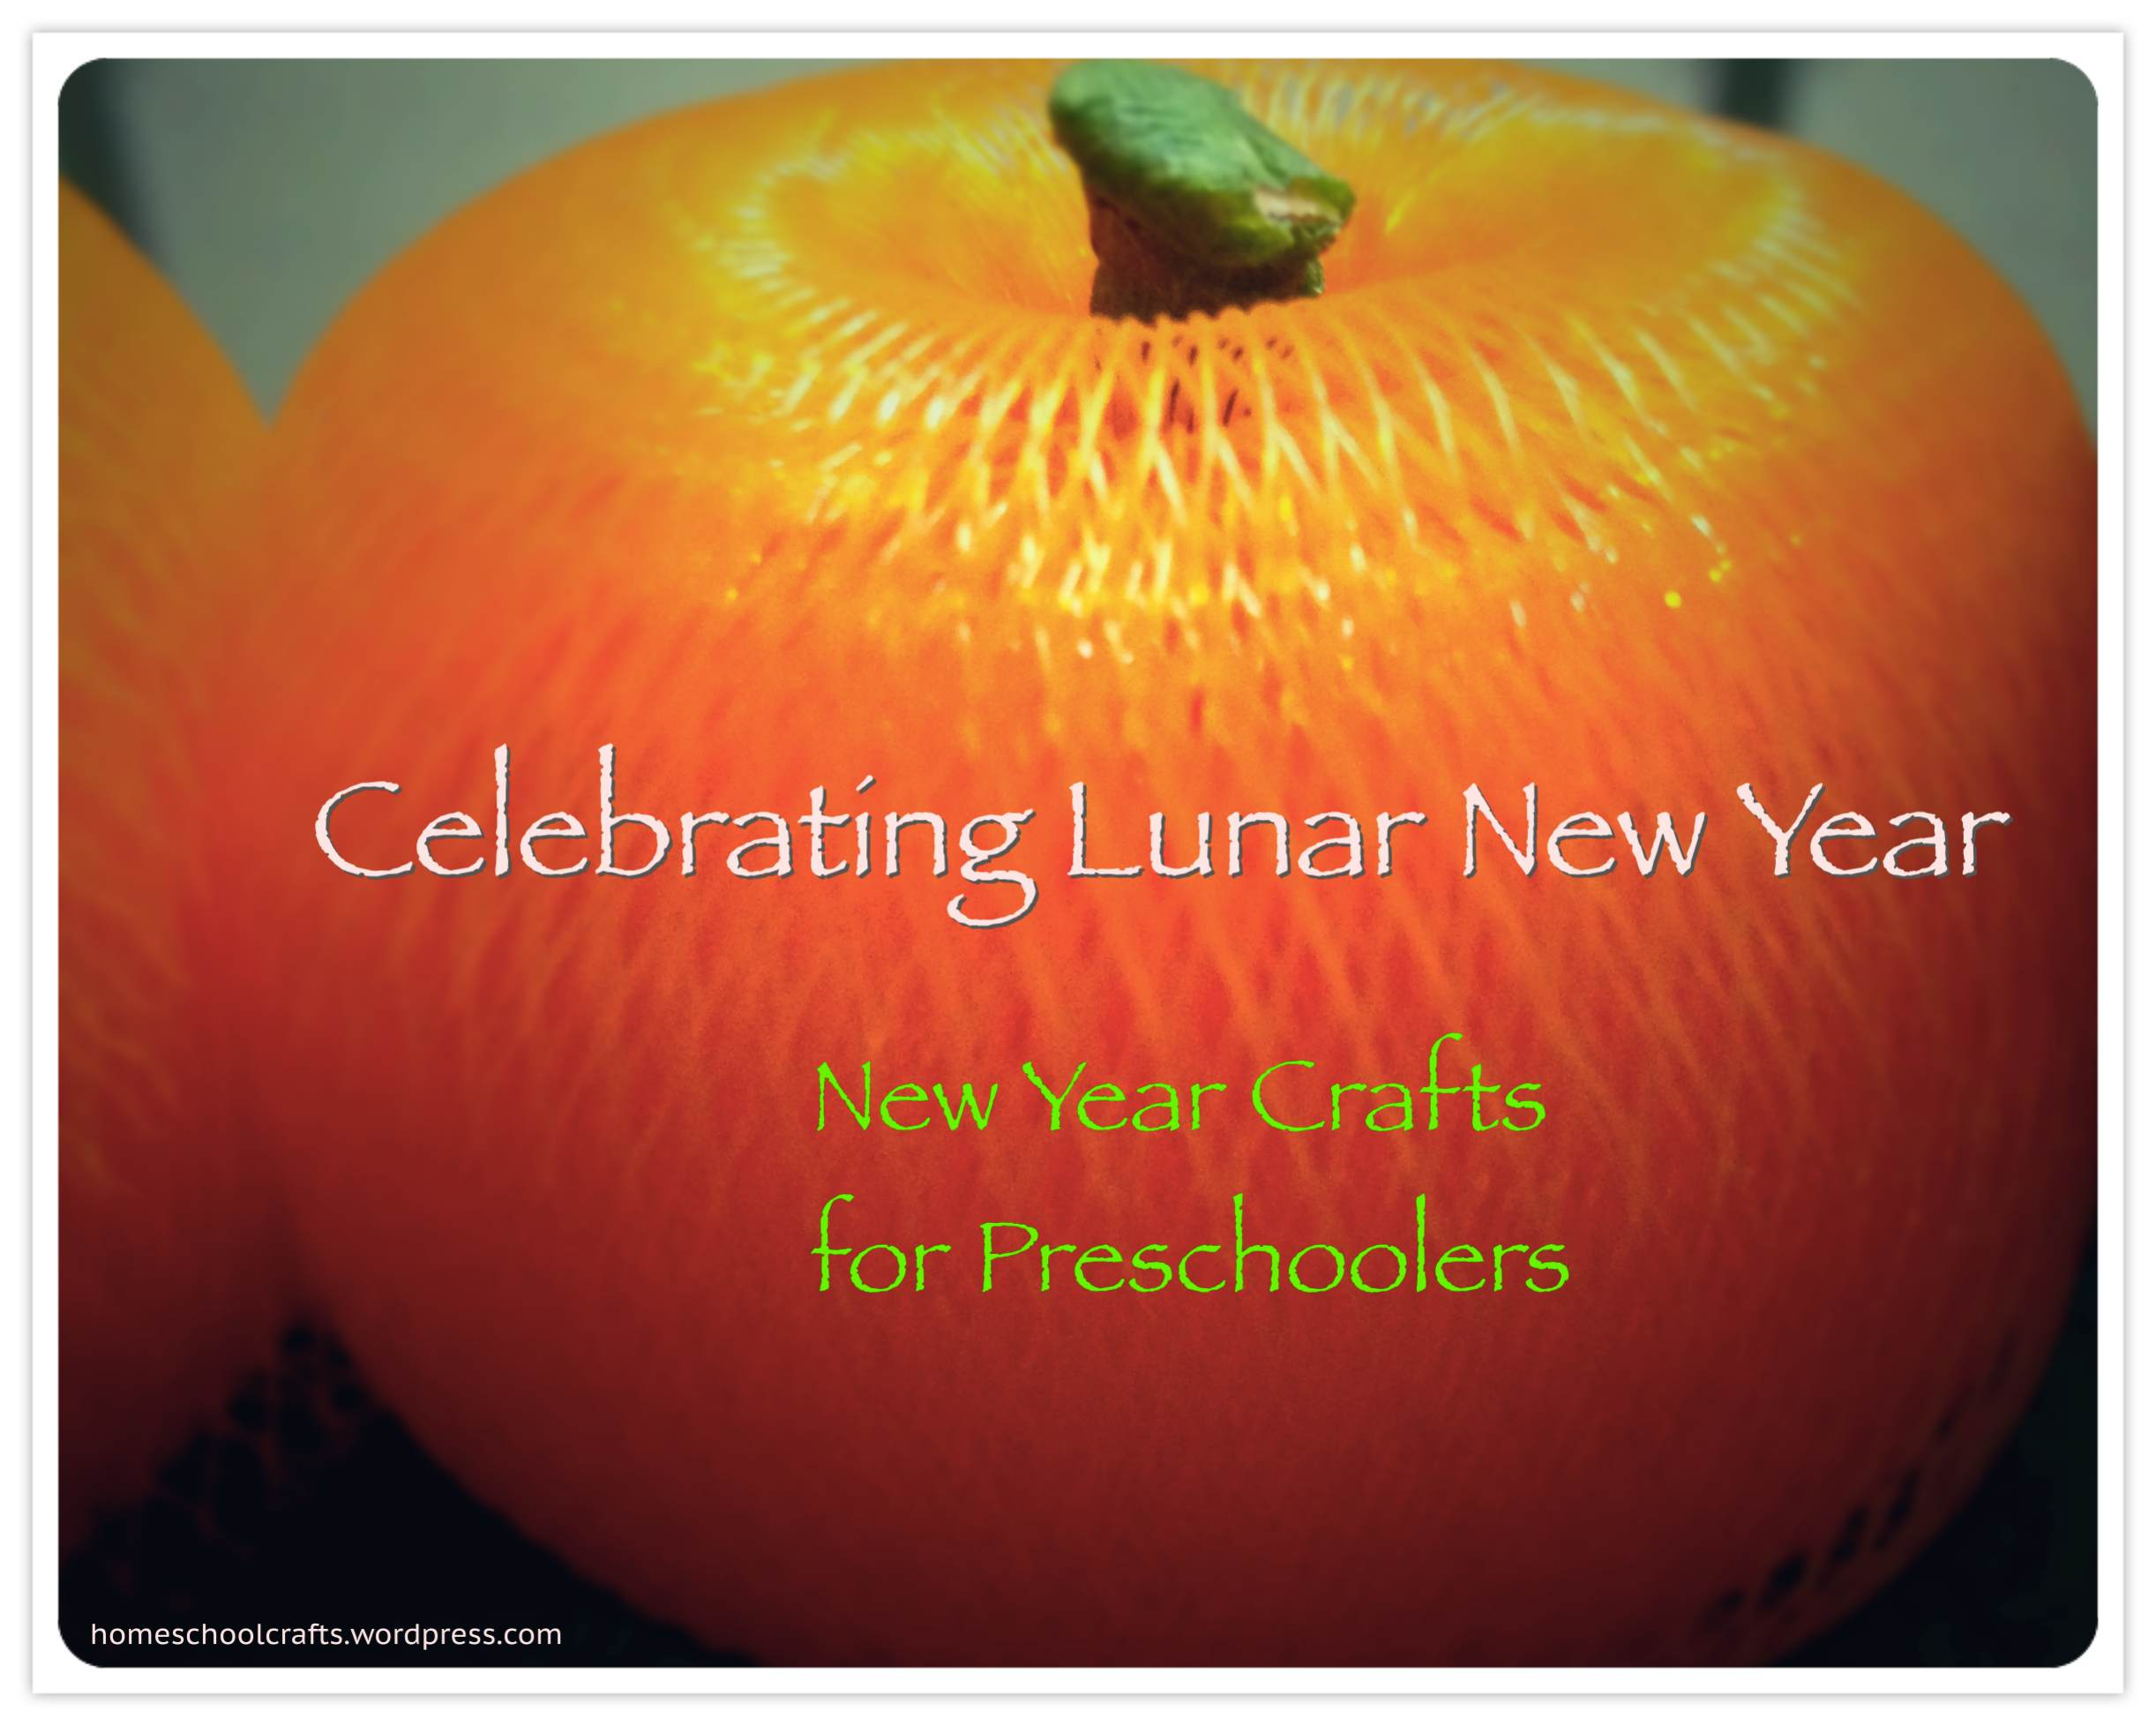 Celebrating Lunar New Year Crafts And Books For Preschoolers Homeschool Crafts